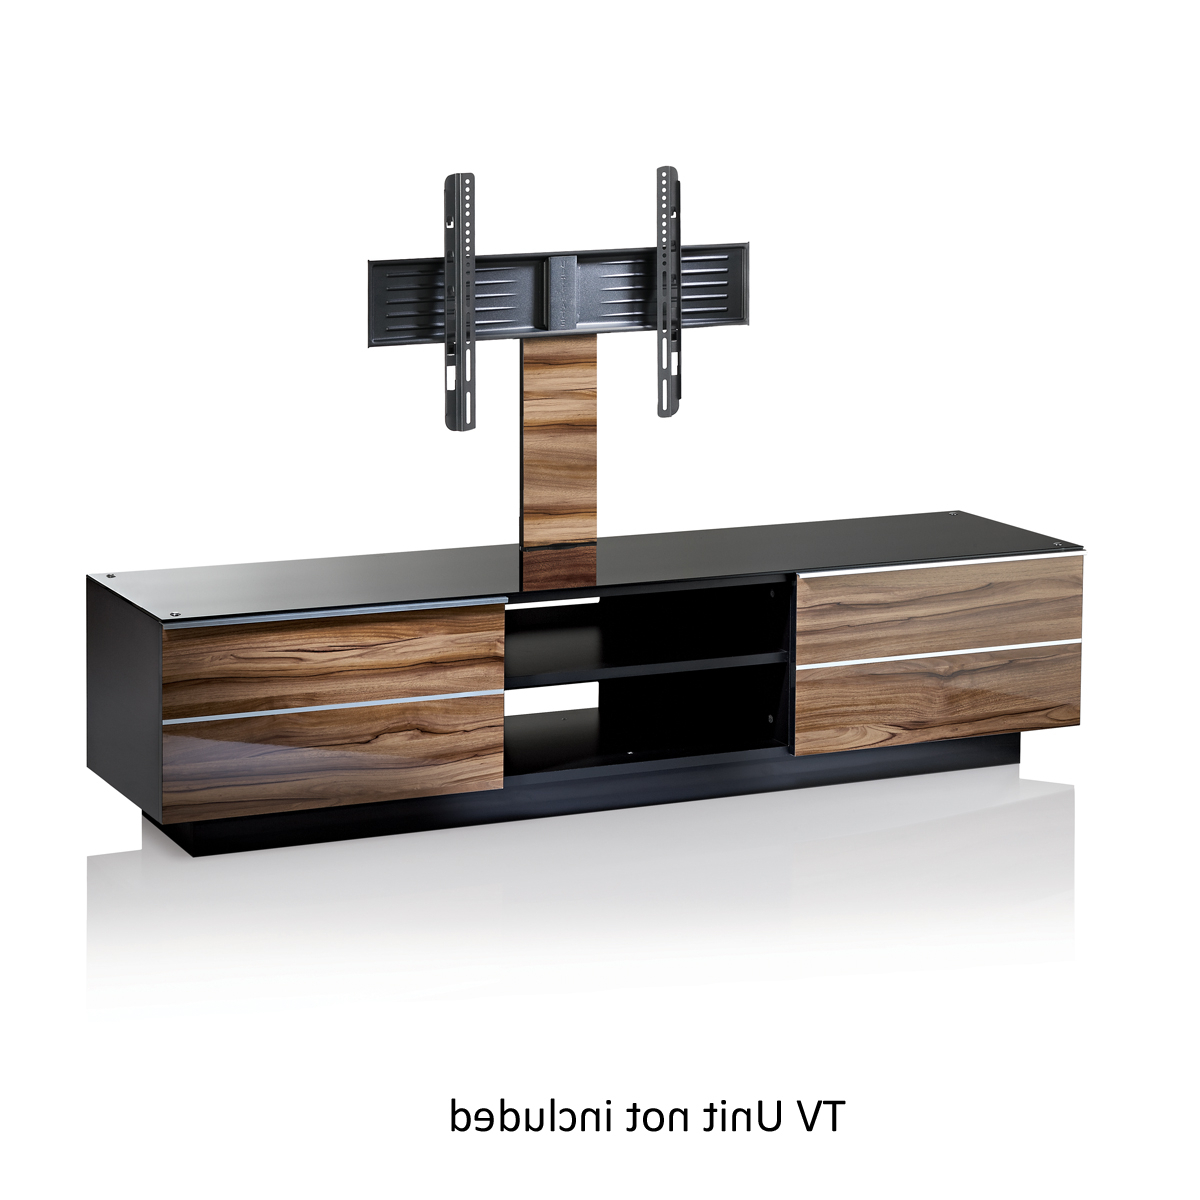 Most Recently Released Milano G B 80 Mln Cantilever Tv Bracket,ukcf Ultimate,,uk Cf Within Tv Stand Cantilever (View 9 of 20)